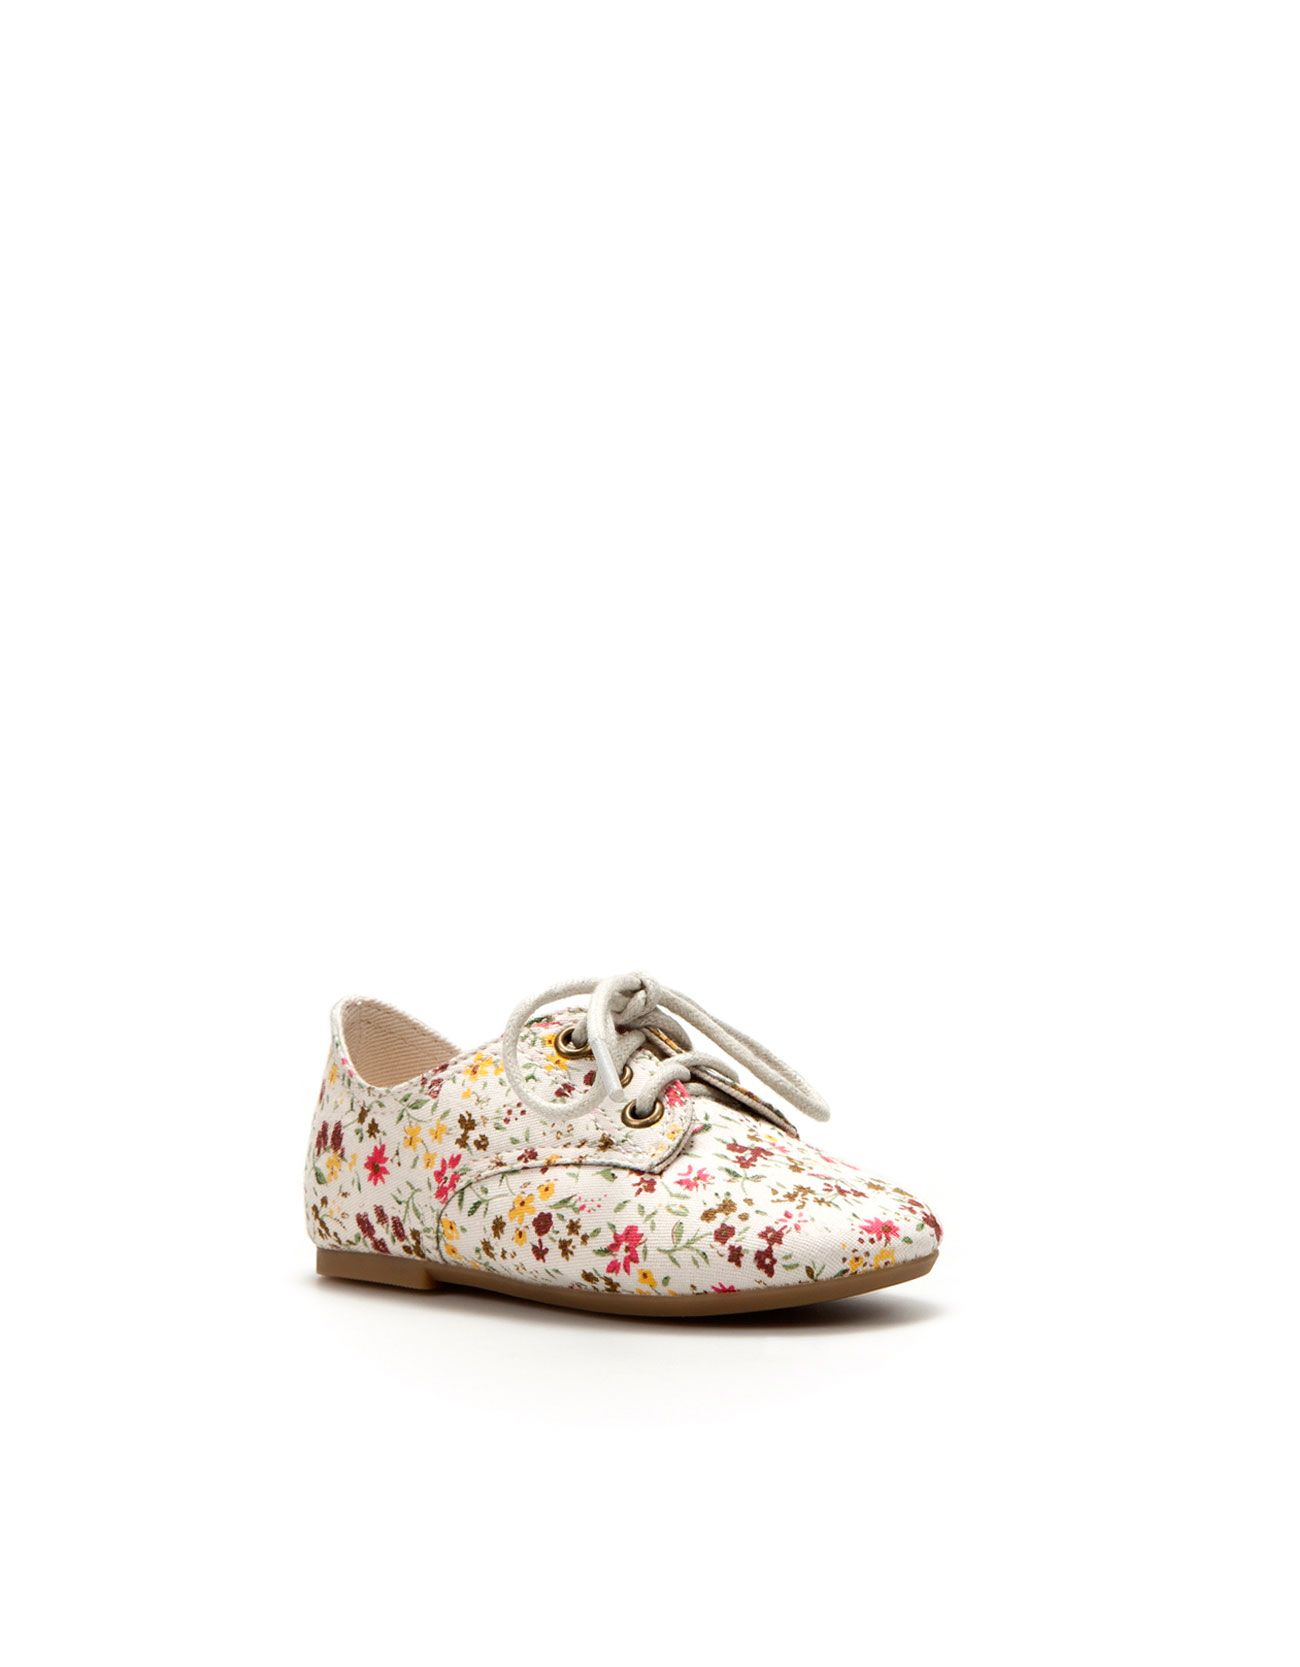 BABY BLUCHER SHOE - Shoes - Baby girl